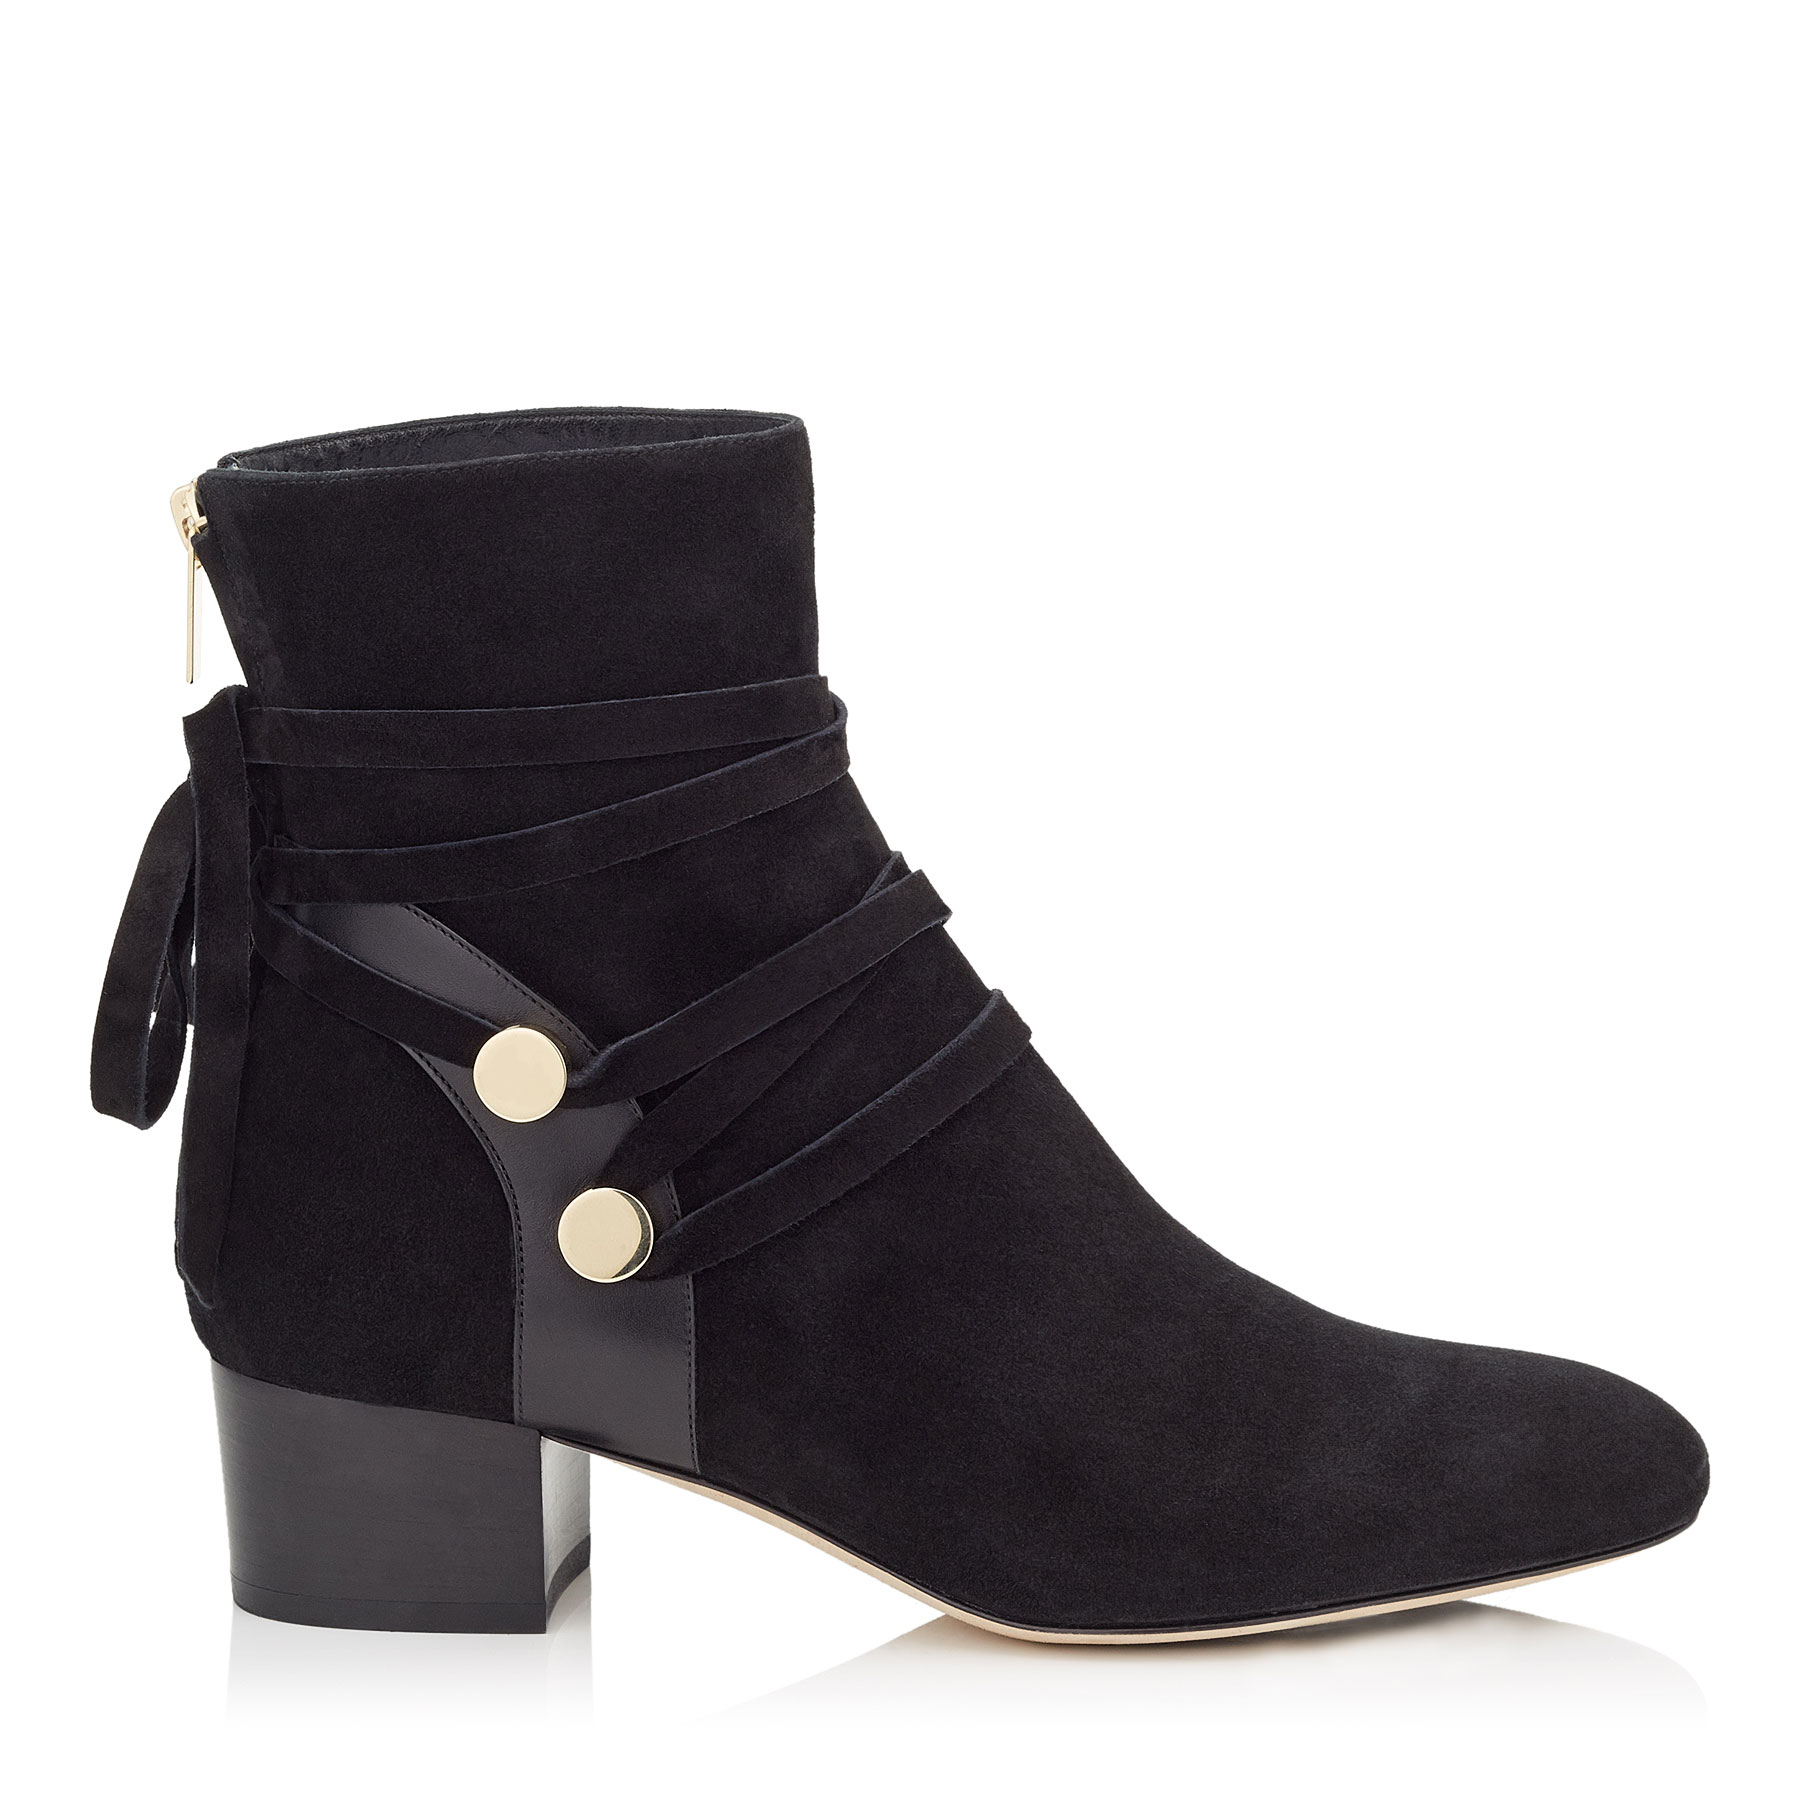 HOUSTON 45 Black Suede Ankle Boots by Jimmy Choo